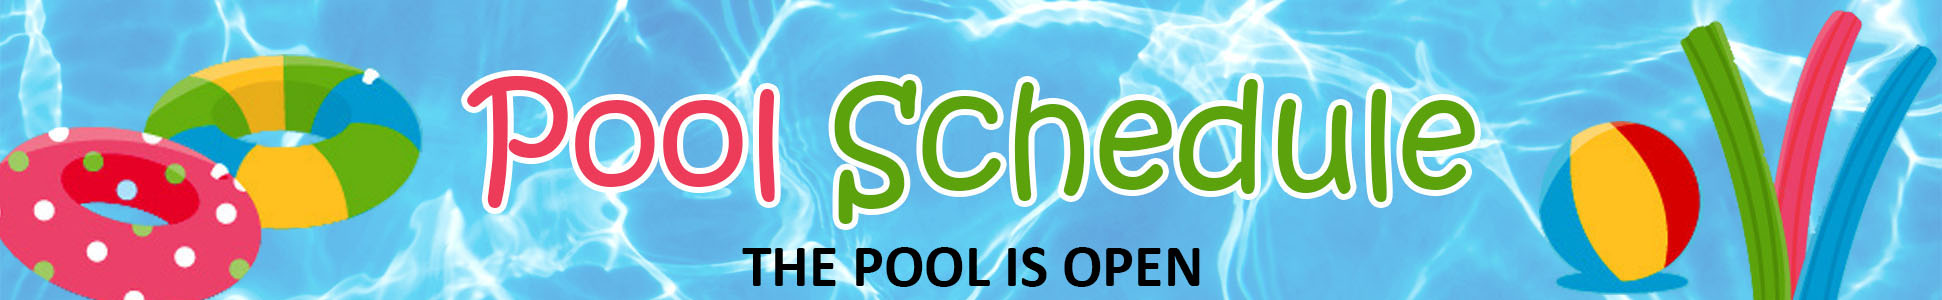 poolSchedule_home page button